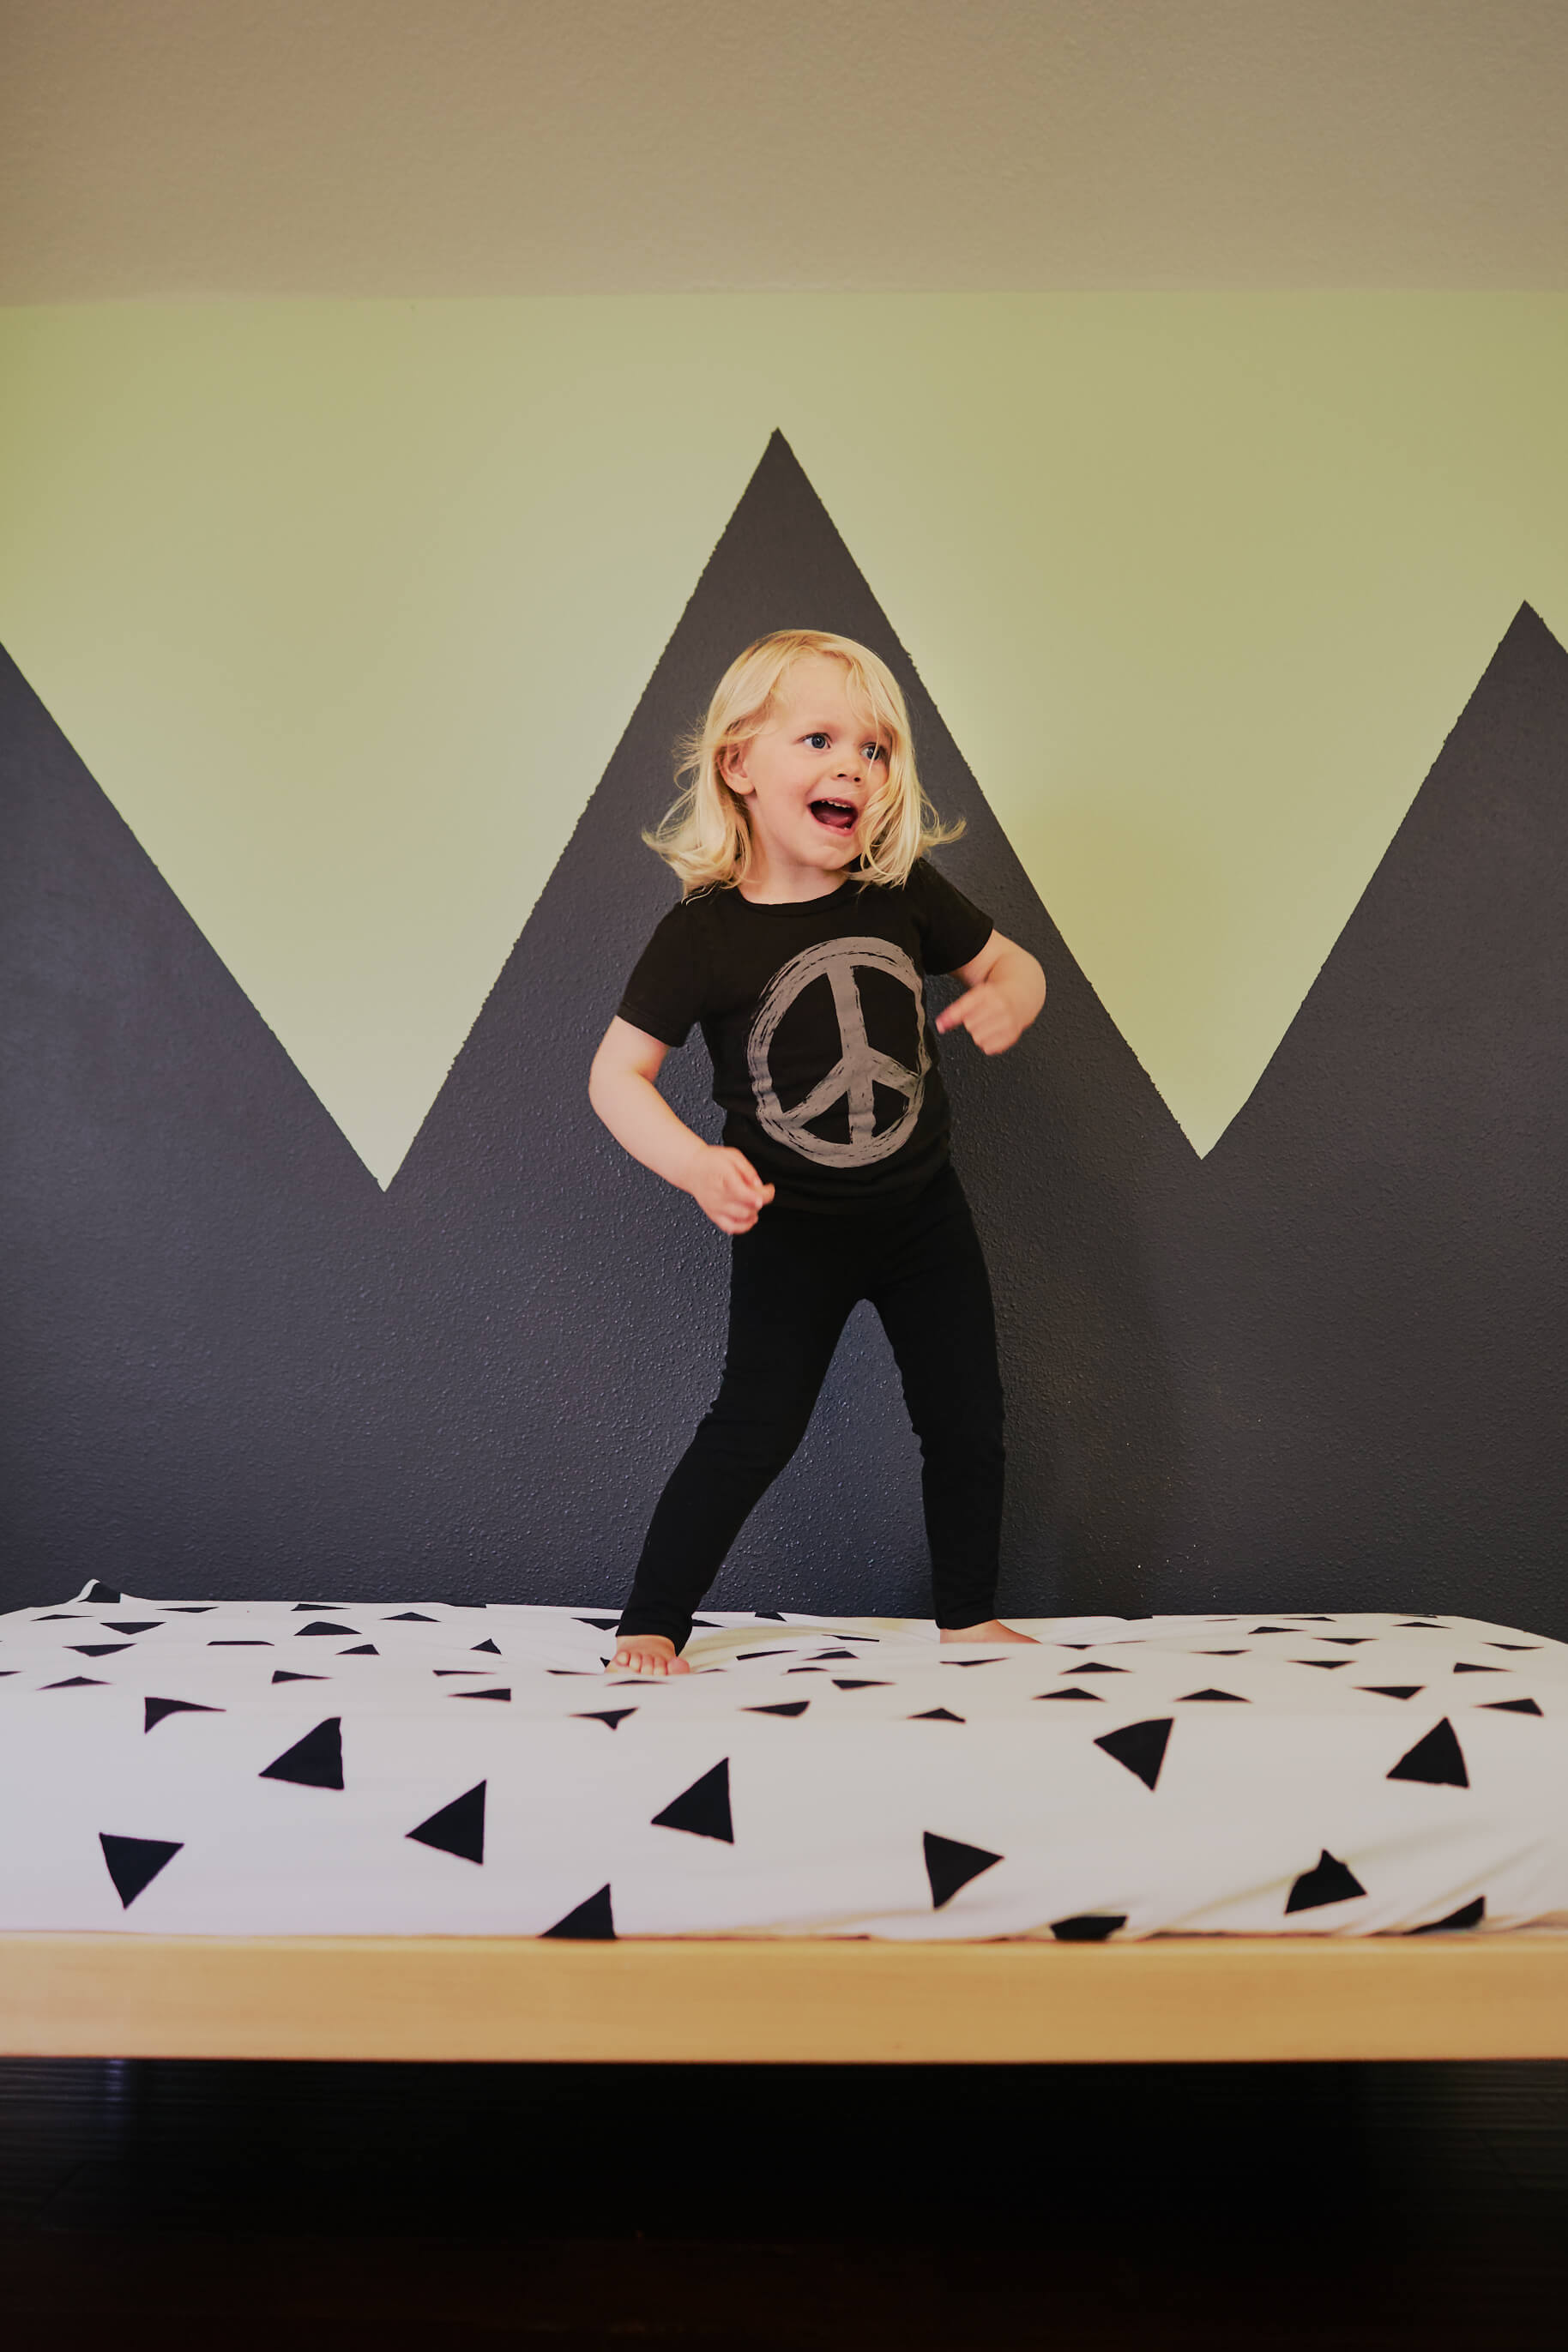 Kindred Kid & Baby Organic Cotton Triangle Crib Sheet Jungle Pillows